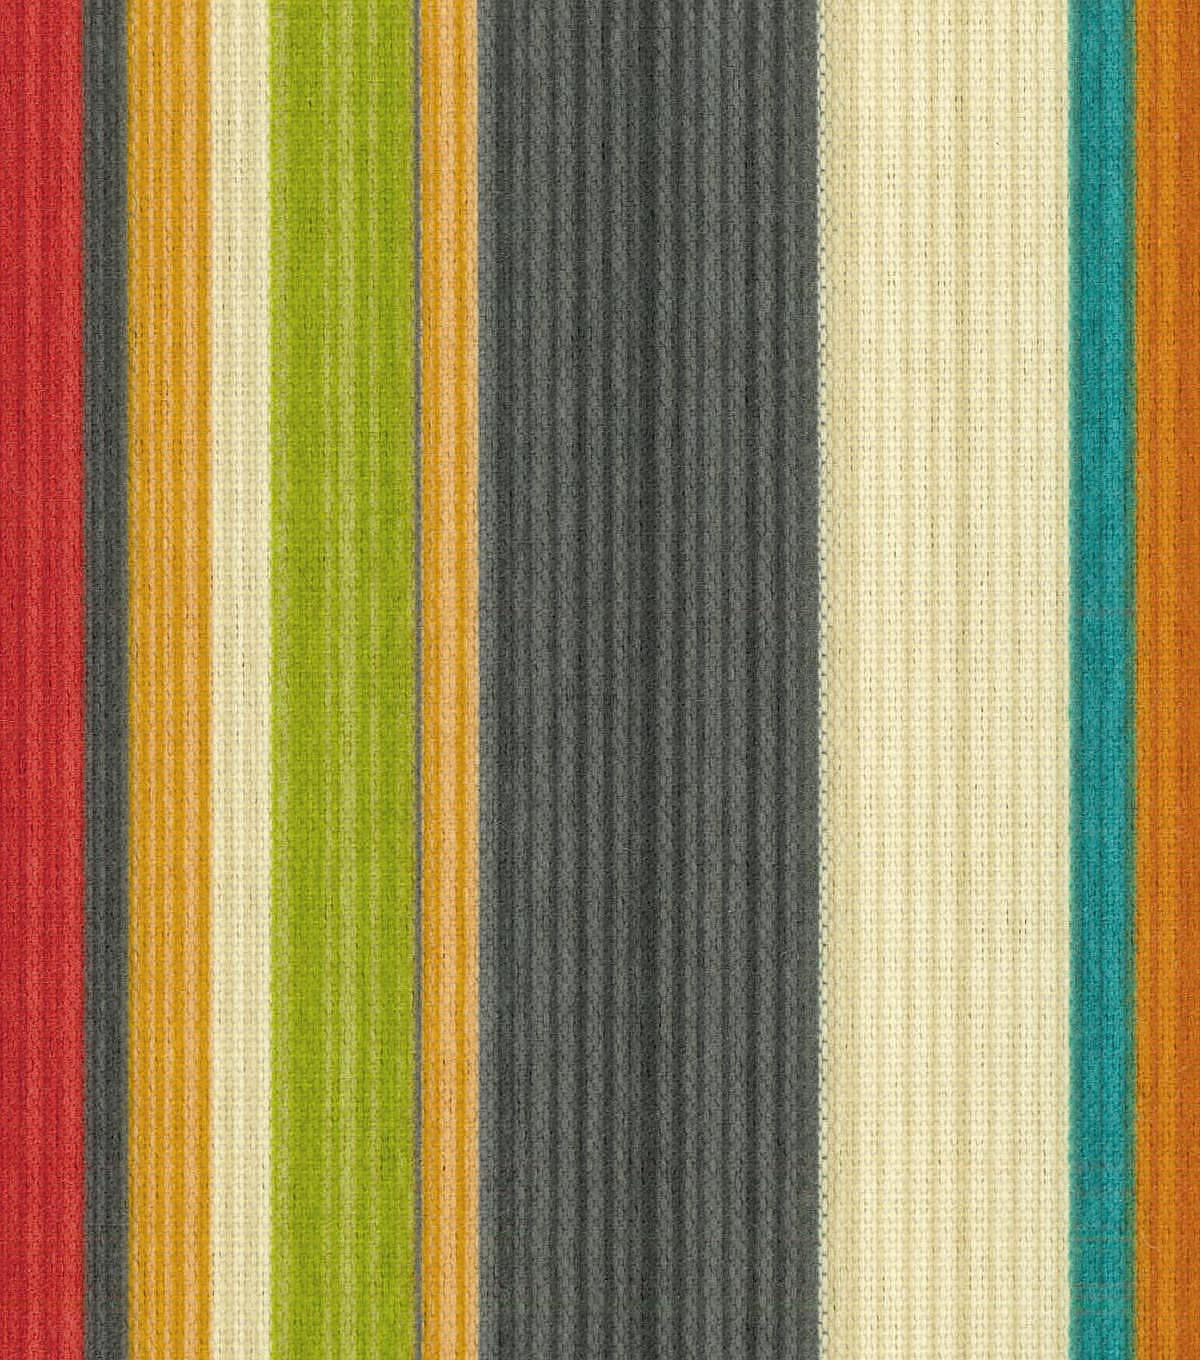 Waverly Sun N\u0027 Shade Outdoor Fabric 54\u0022-Draw the Line Fiesta